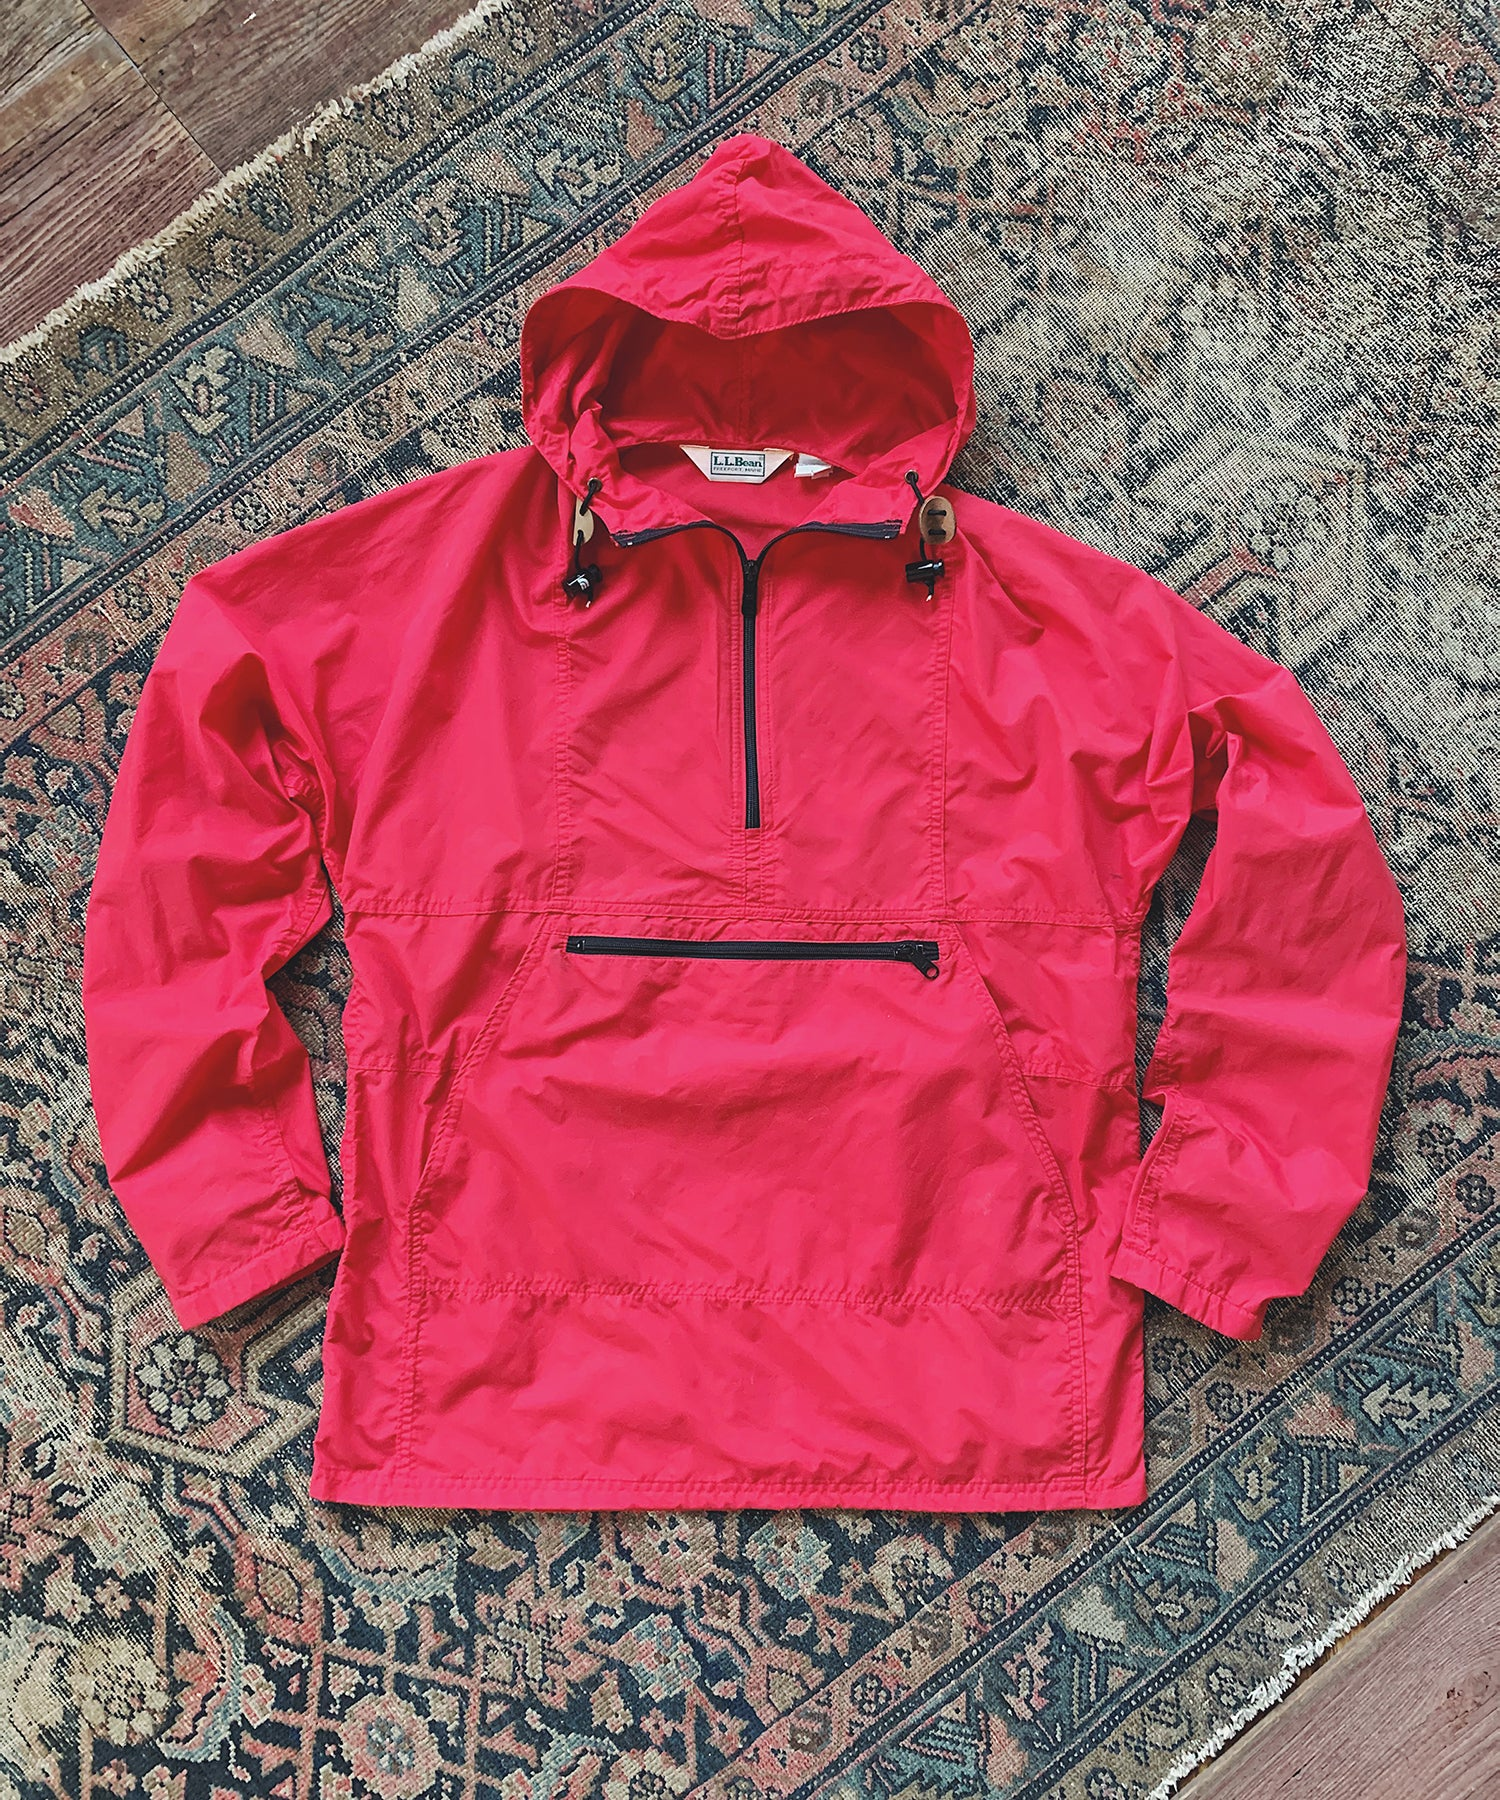 Item #9 -  Todd Snyder x Wooden Sleepers 1980's Anorak in Red- SOLD OUT